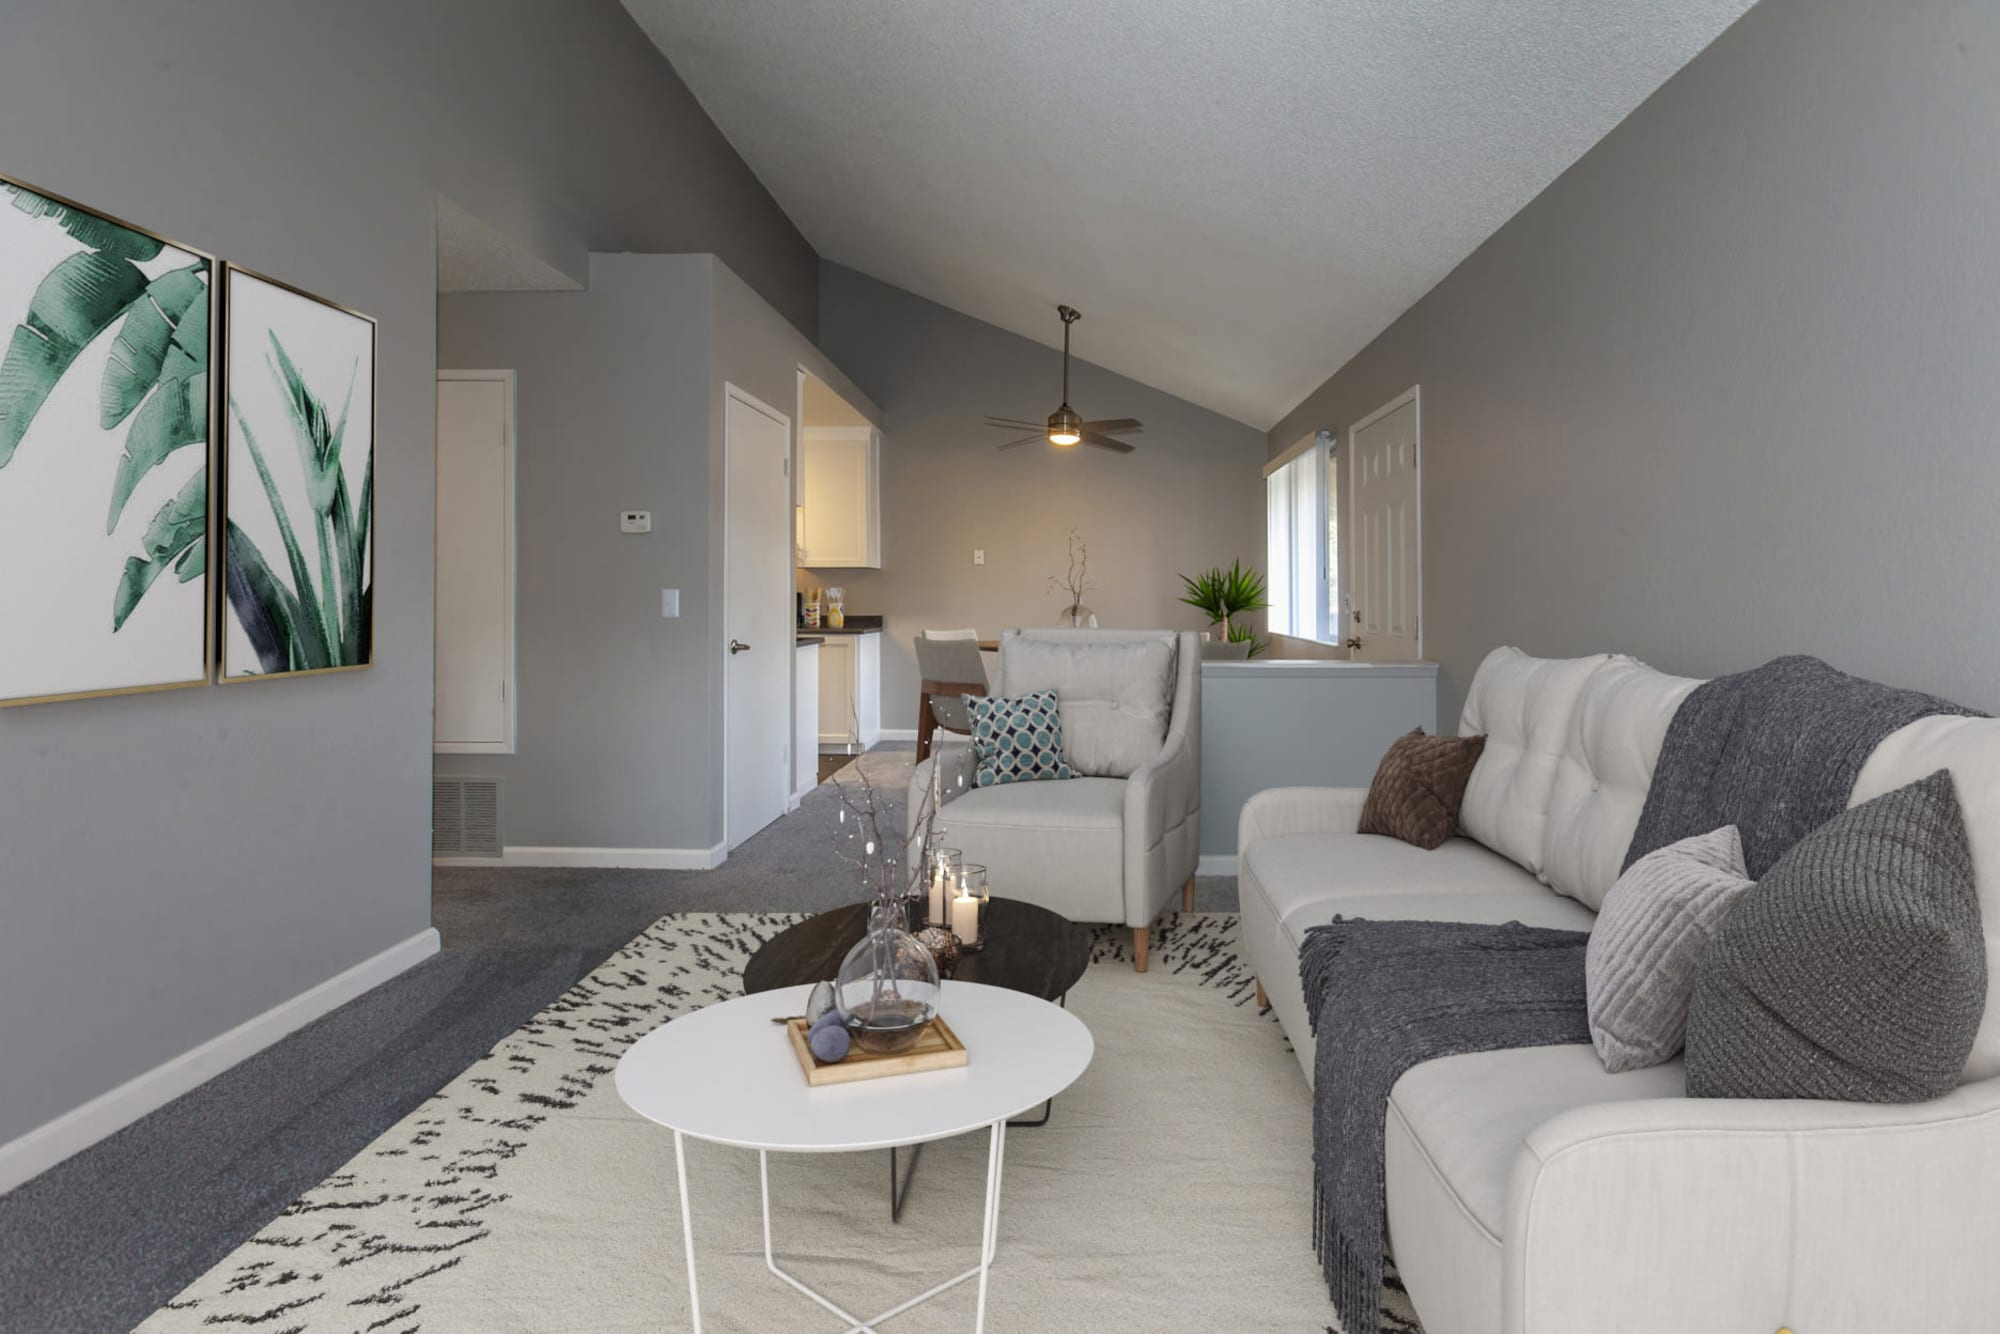 Newly renovated living room at Avery Park Apartments in Fairfield, California